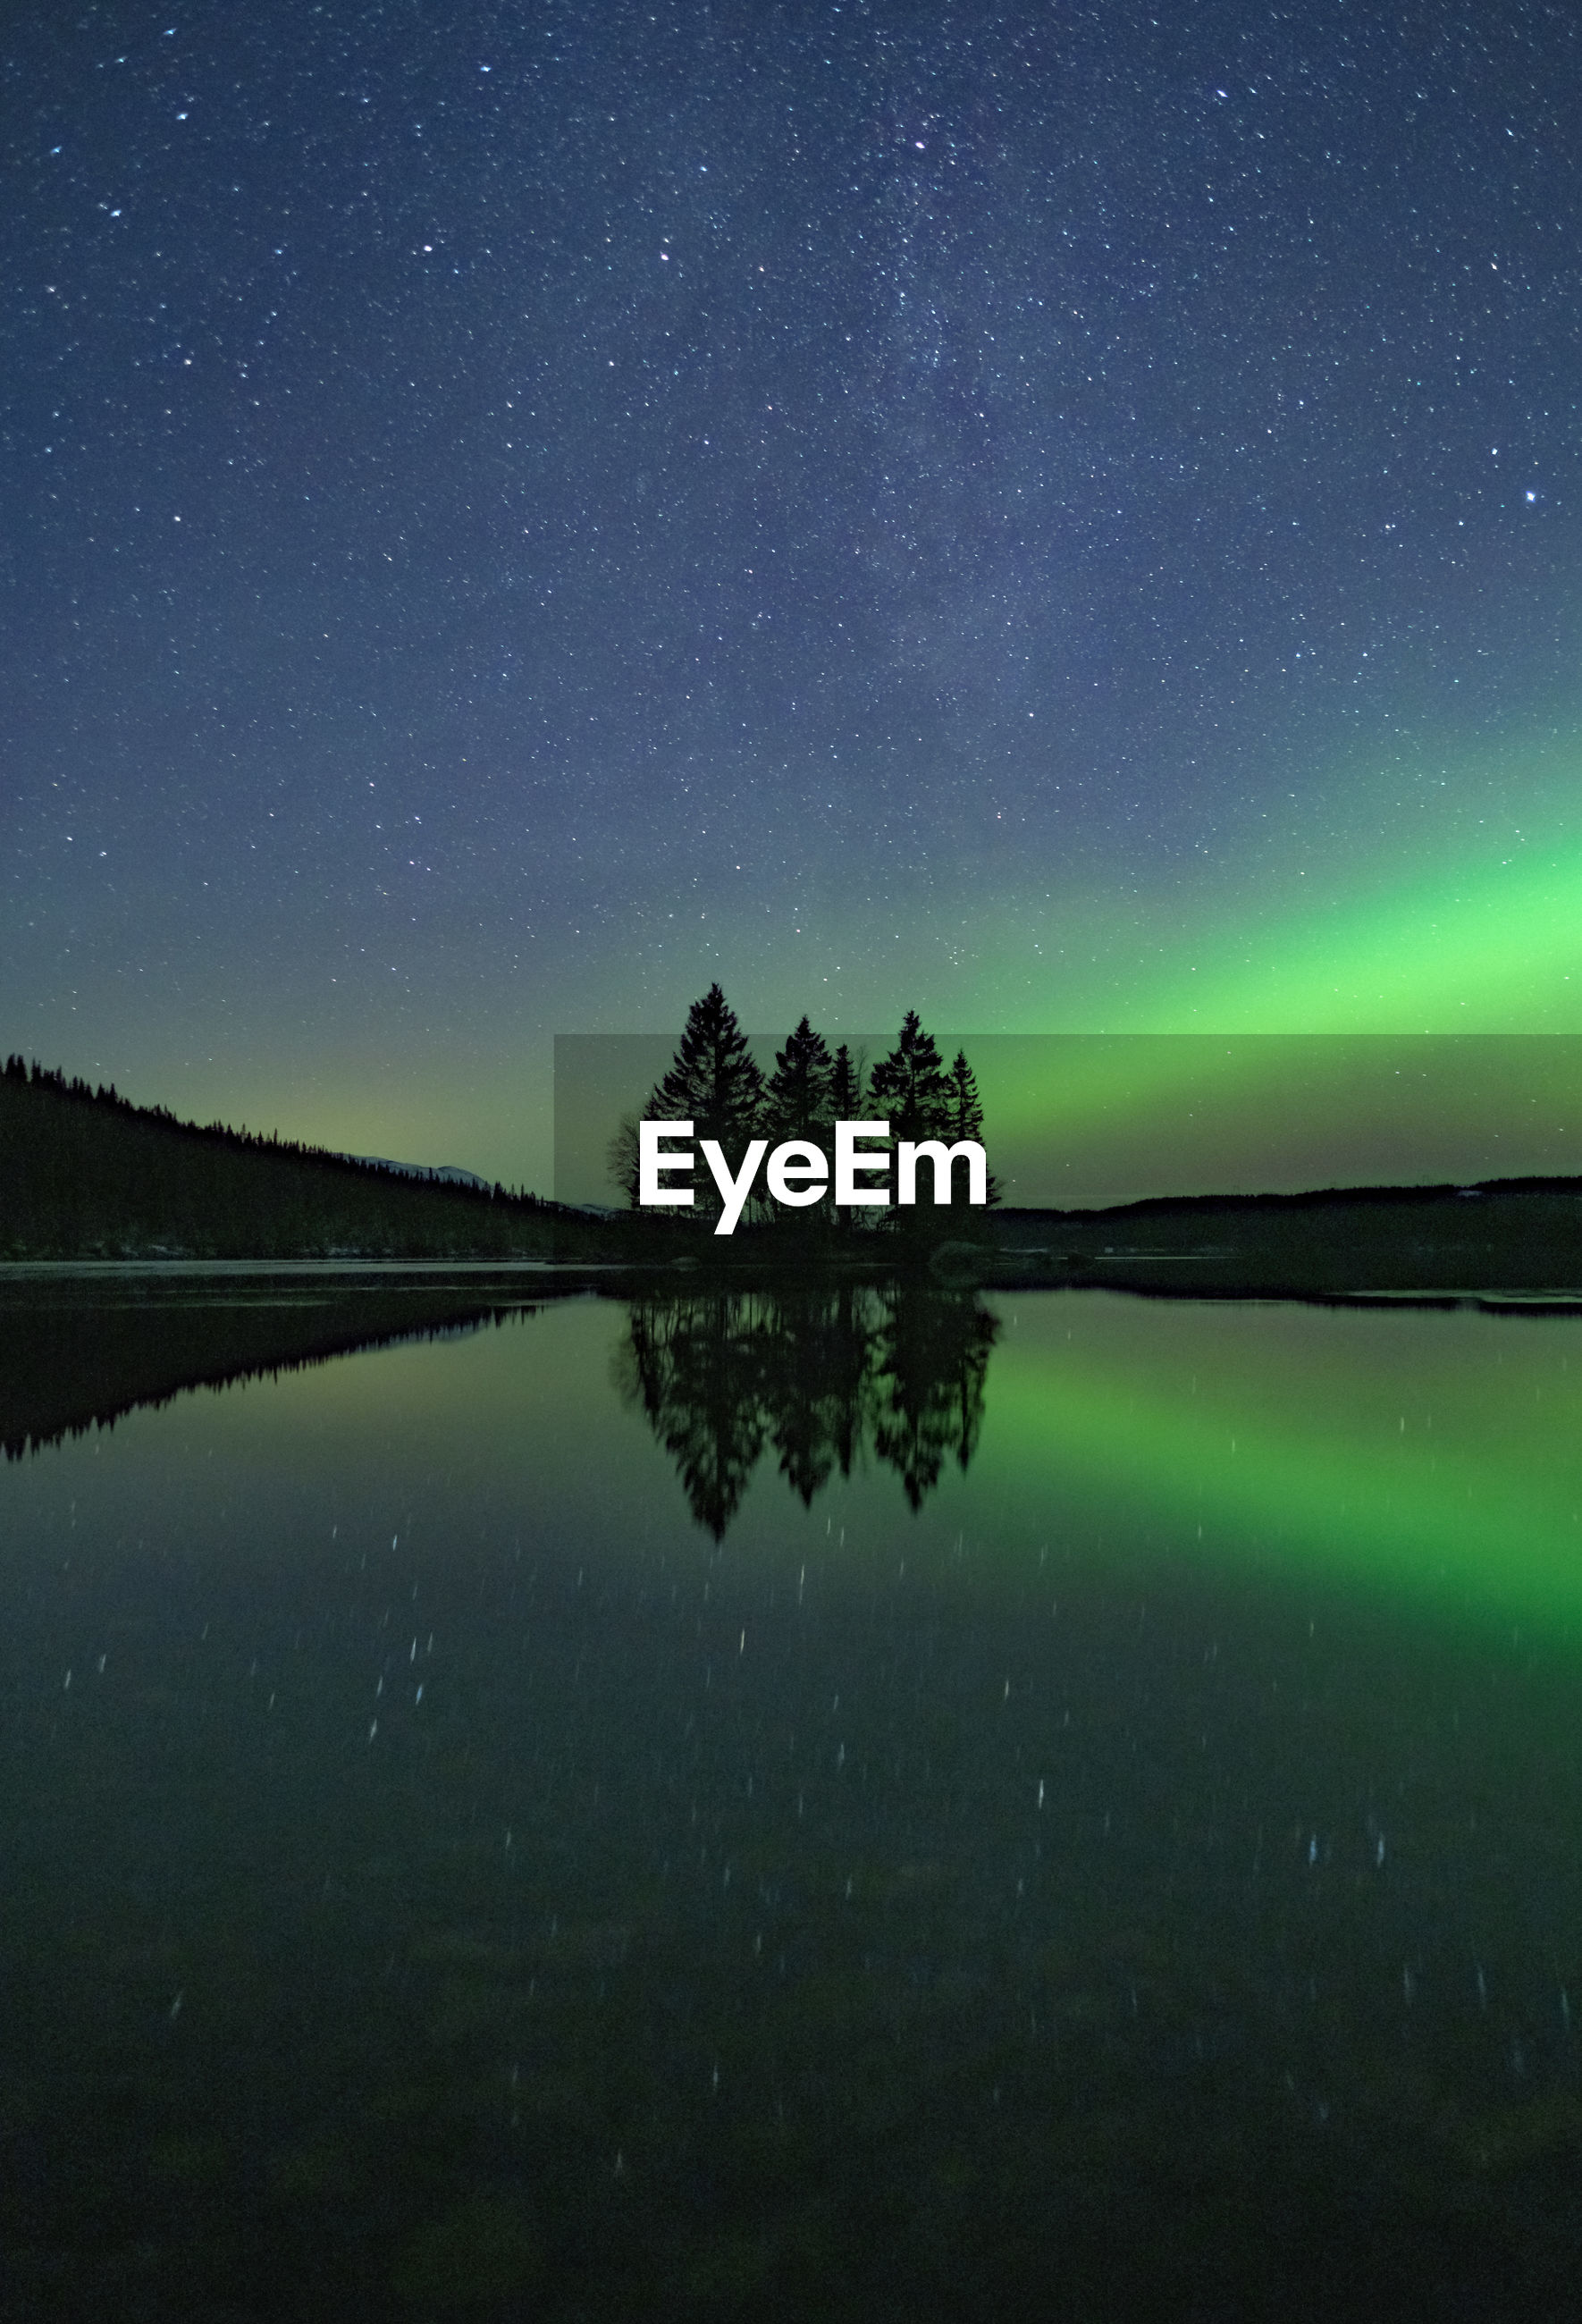 Starfield with aurora borealis reflections in a still lake with small island in the center